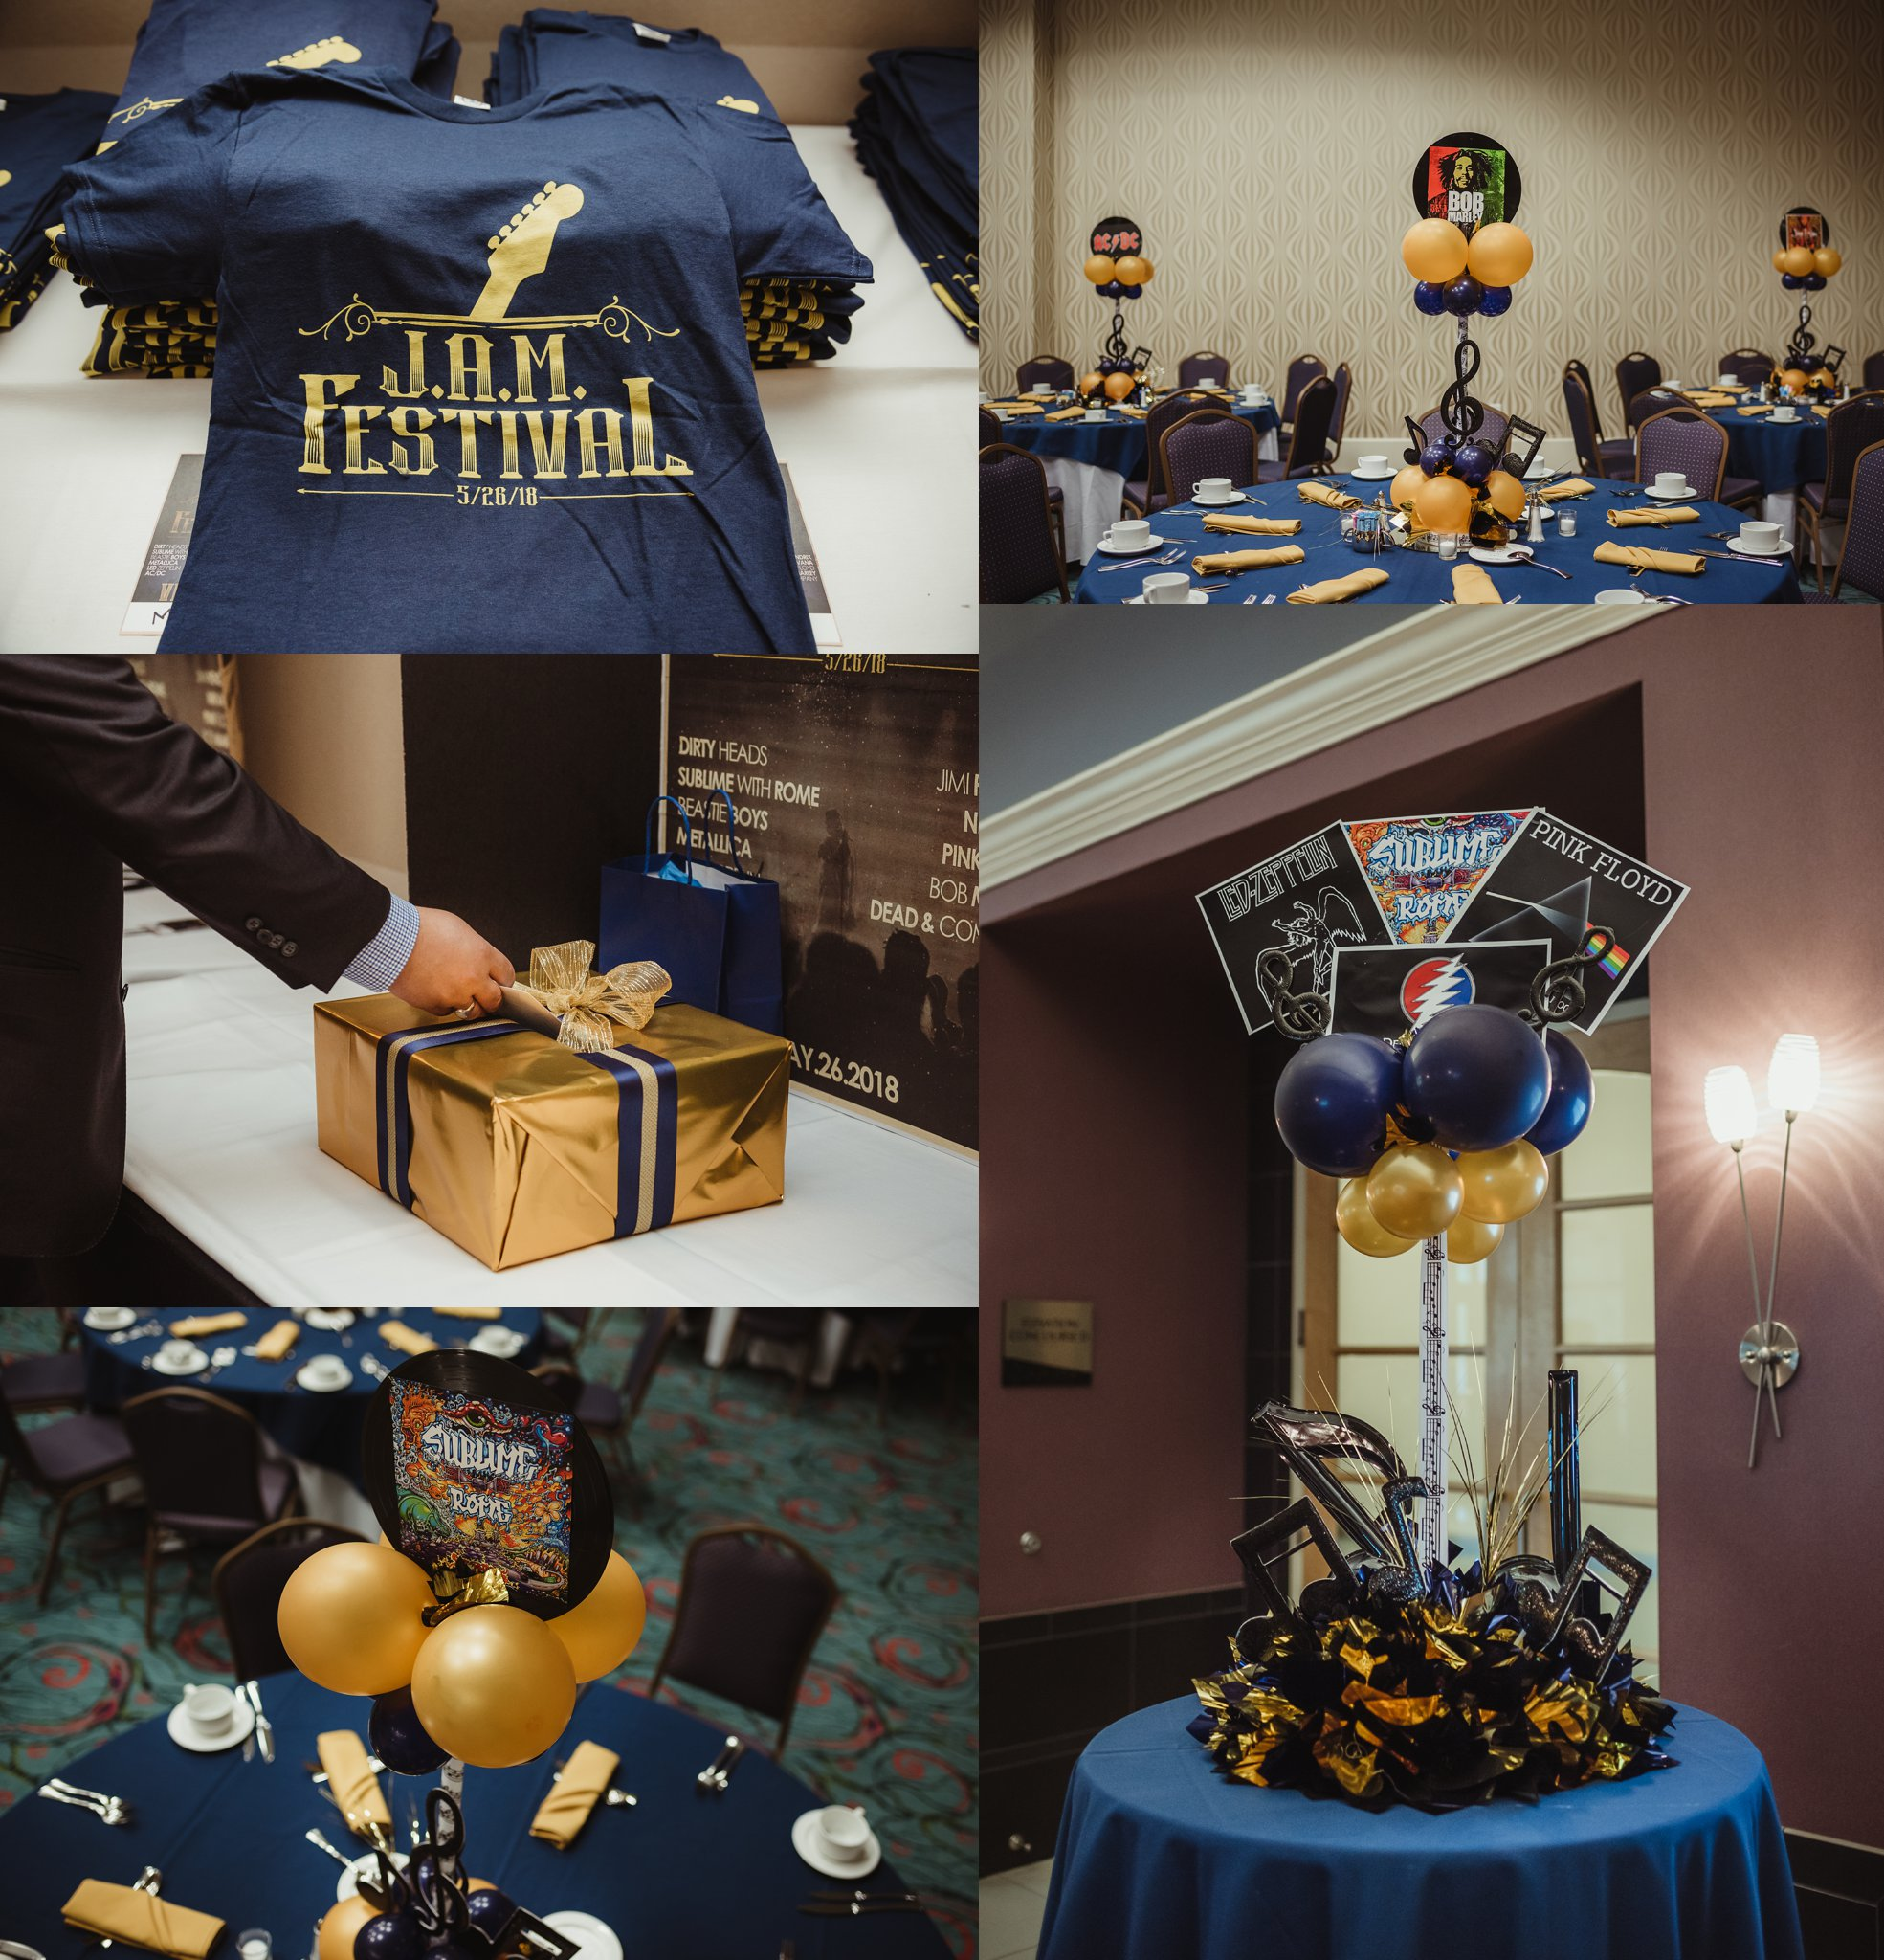 Details of Joel's mitzvah celebration party at Embassy Suites in Raleigh, North Carolina include musical table settings with balloons and homemade t-shirts in a blue and gold color, images by Rose Trail Images.